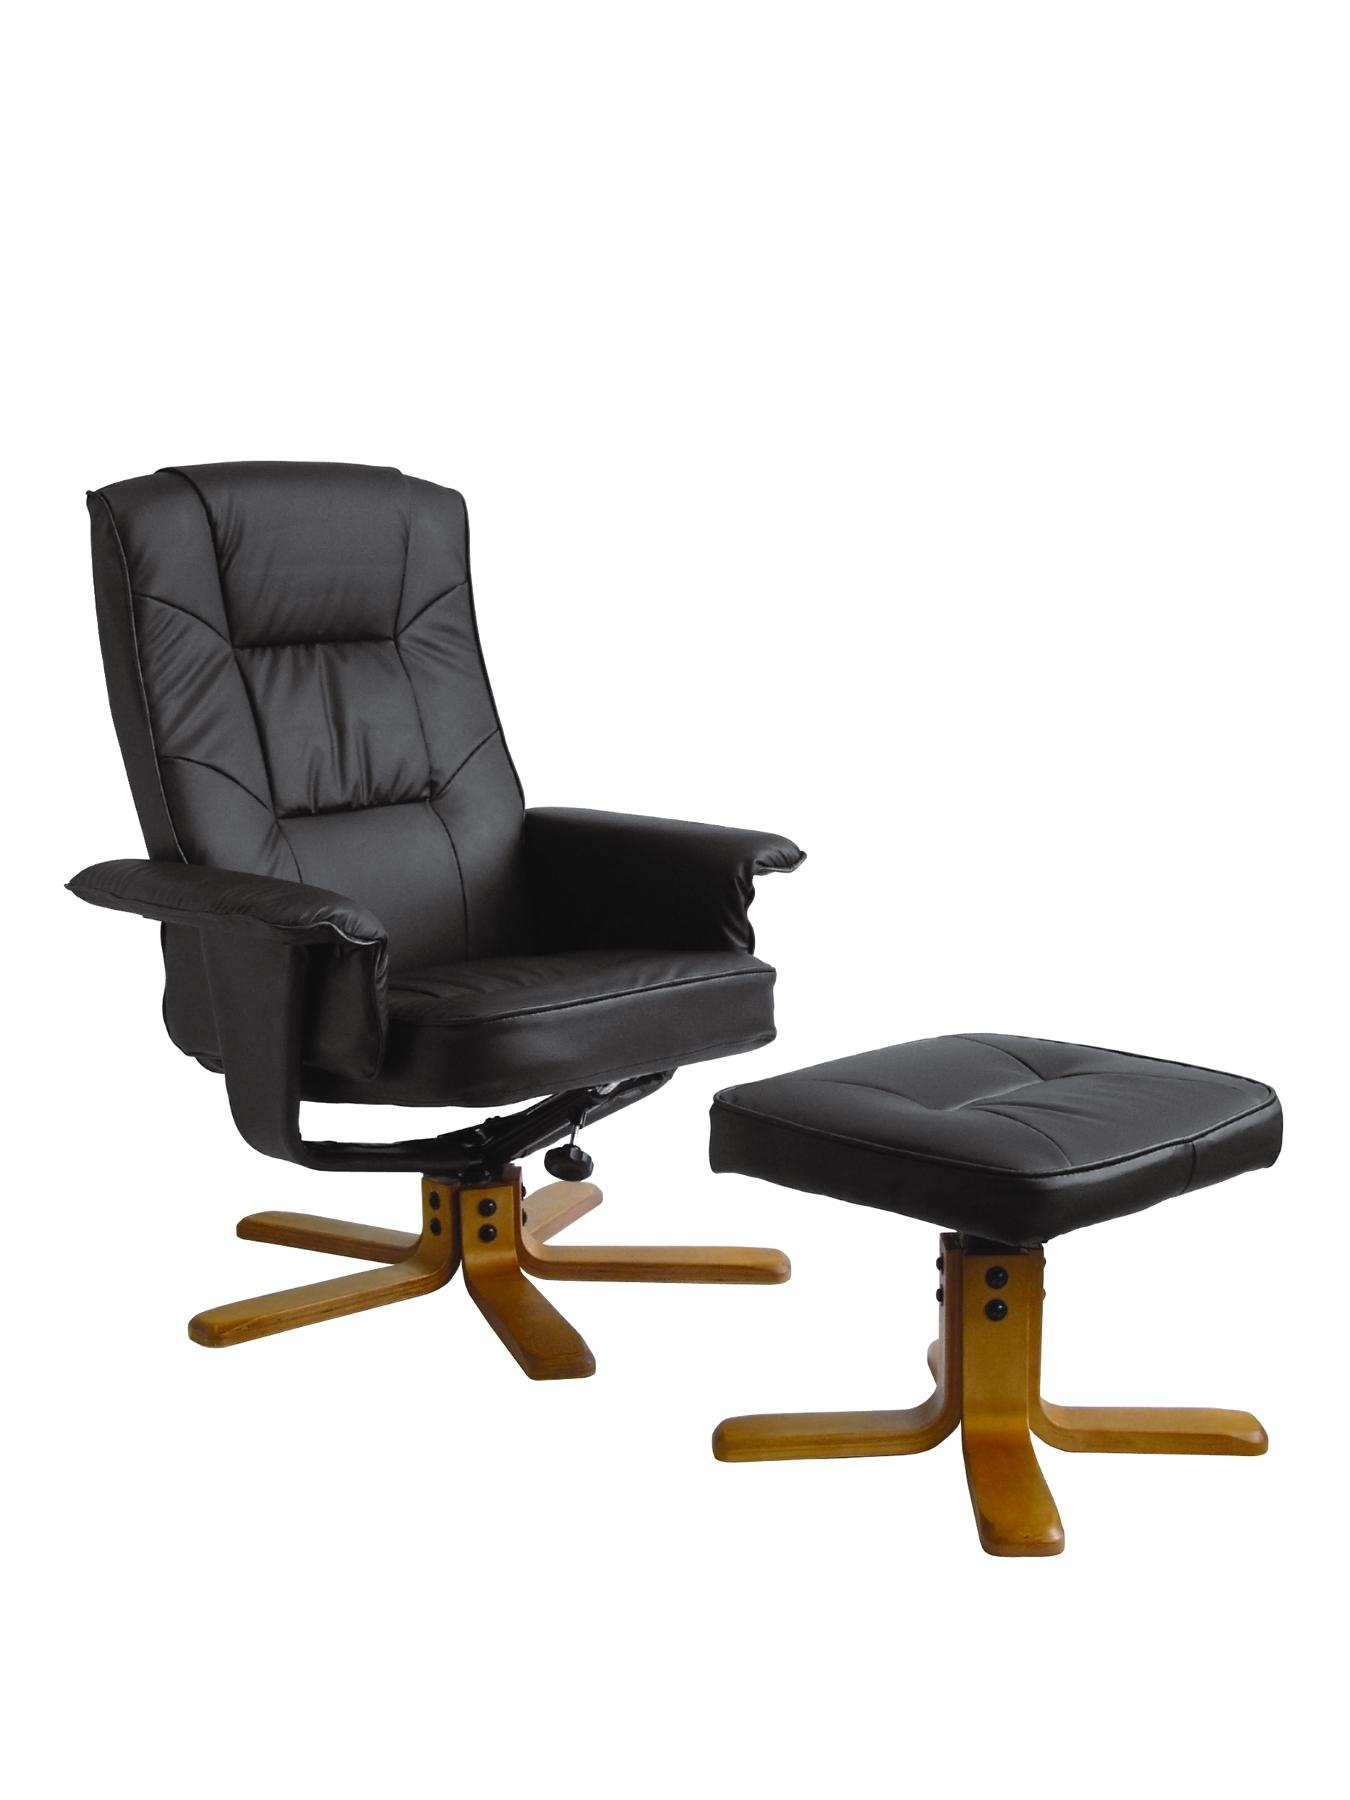 Drake Reclining Office Chair with Matching Footstool - Brown, Brown,Cream,Black